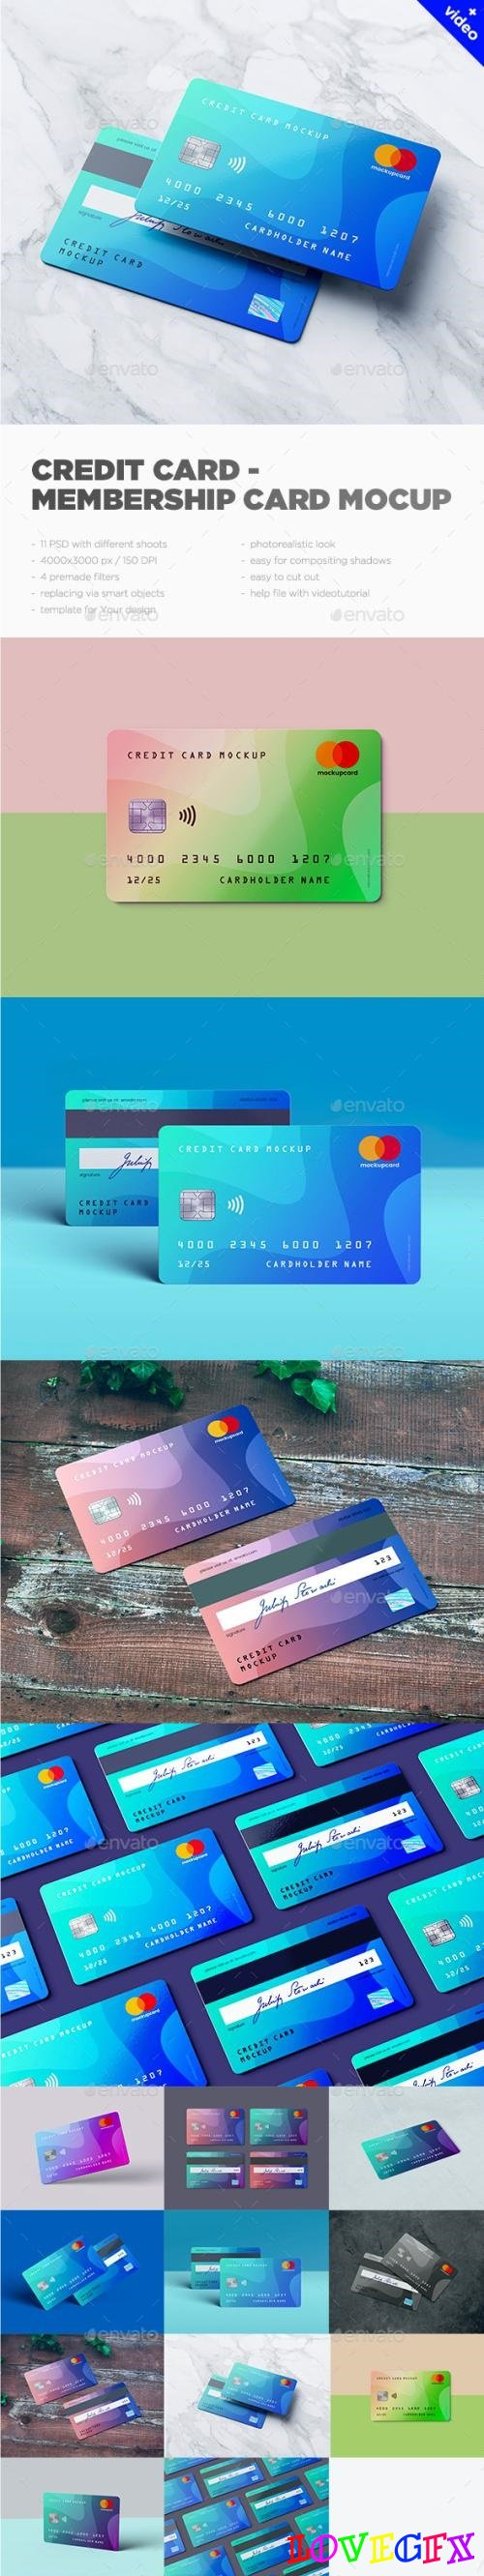 Credit Card / Membership Card MockUp - 22369086